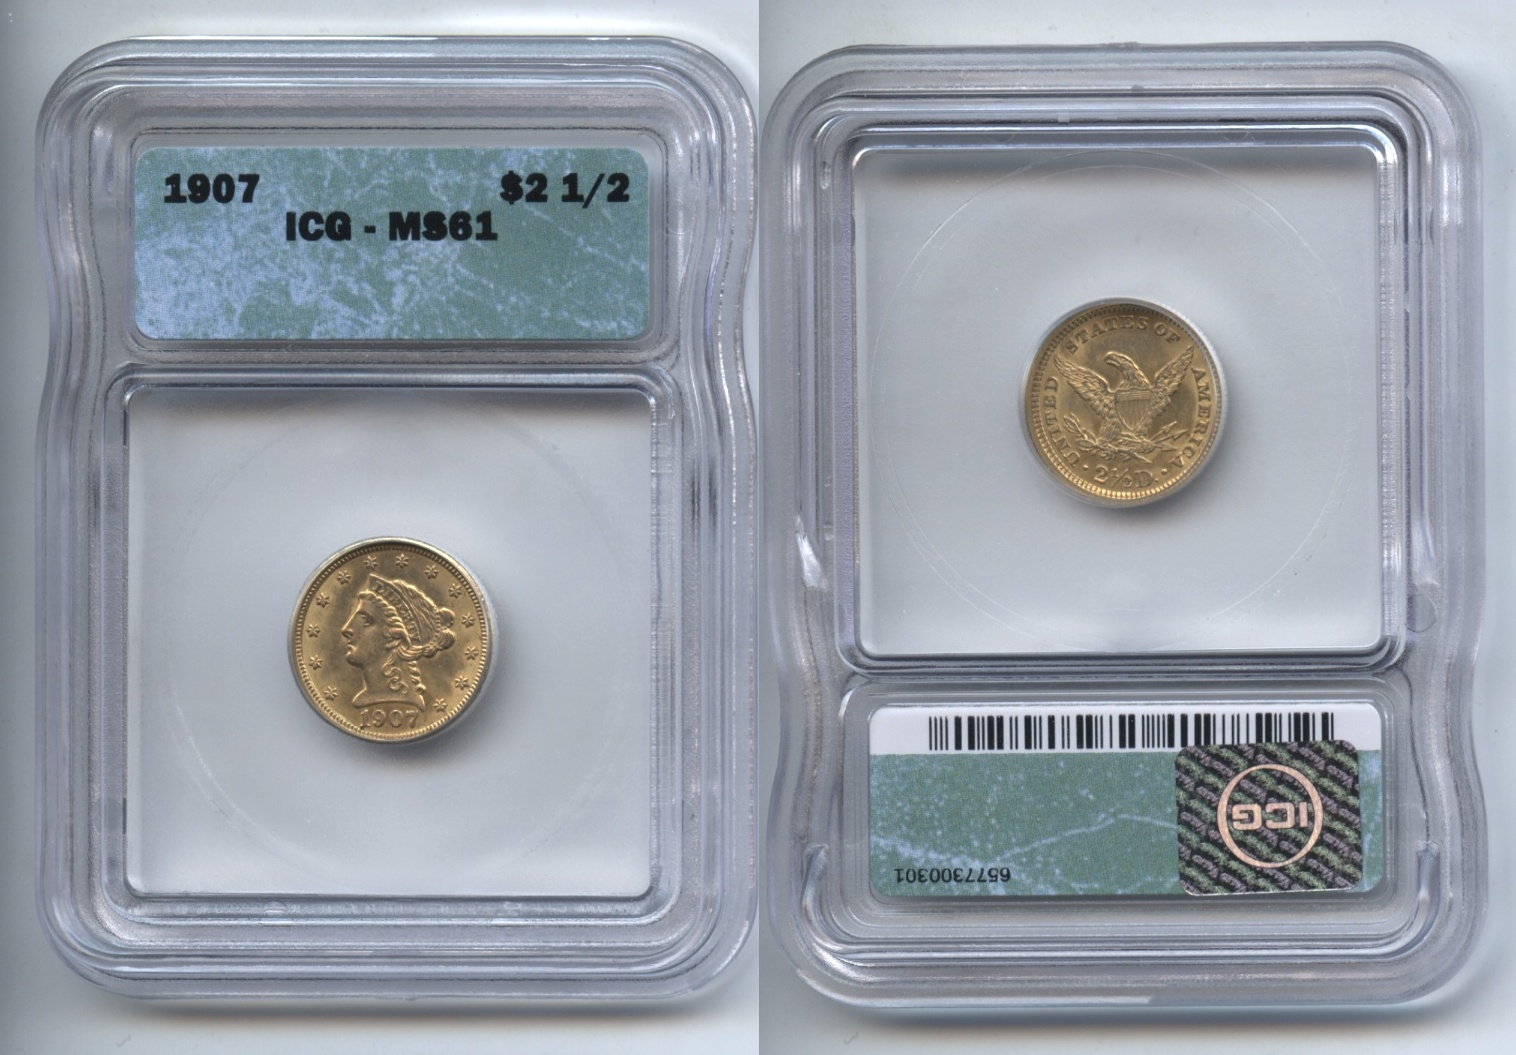 1907 Gold $2.50 Quarter Eagle ICG MS-61